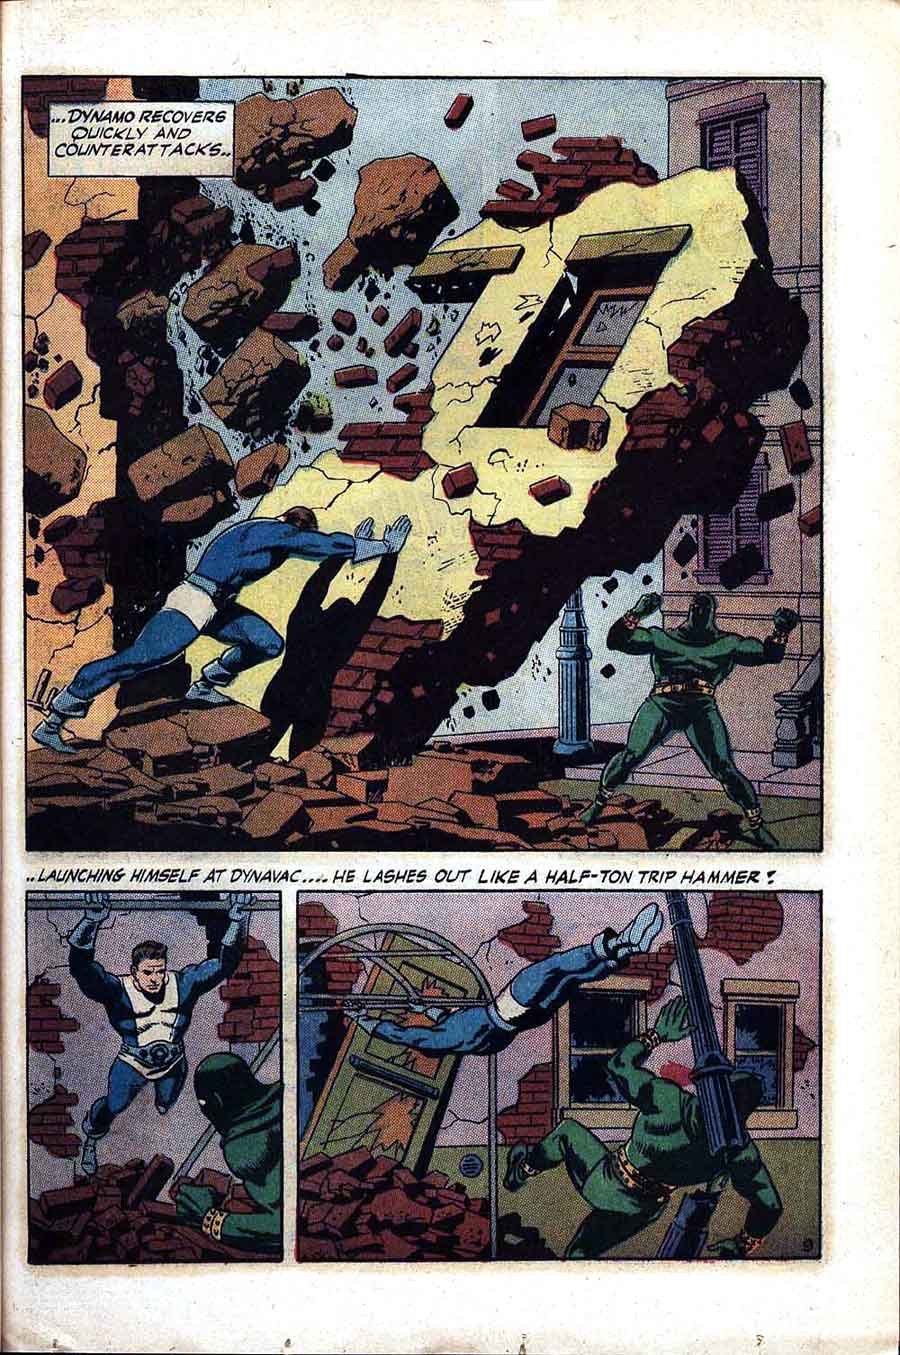 Thunder Agents v1 #2 tower silver age 1960s comic book page art by Wally Wood